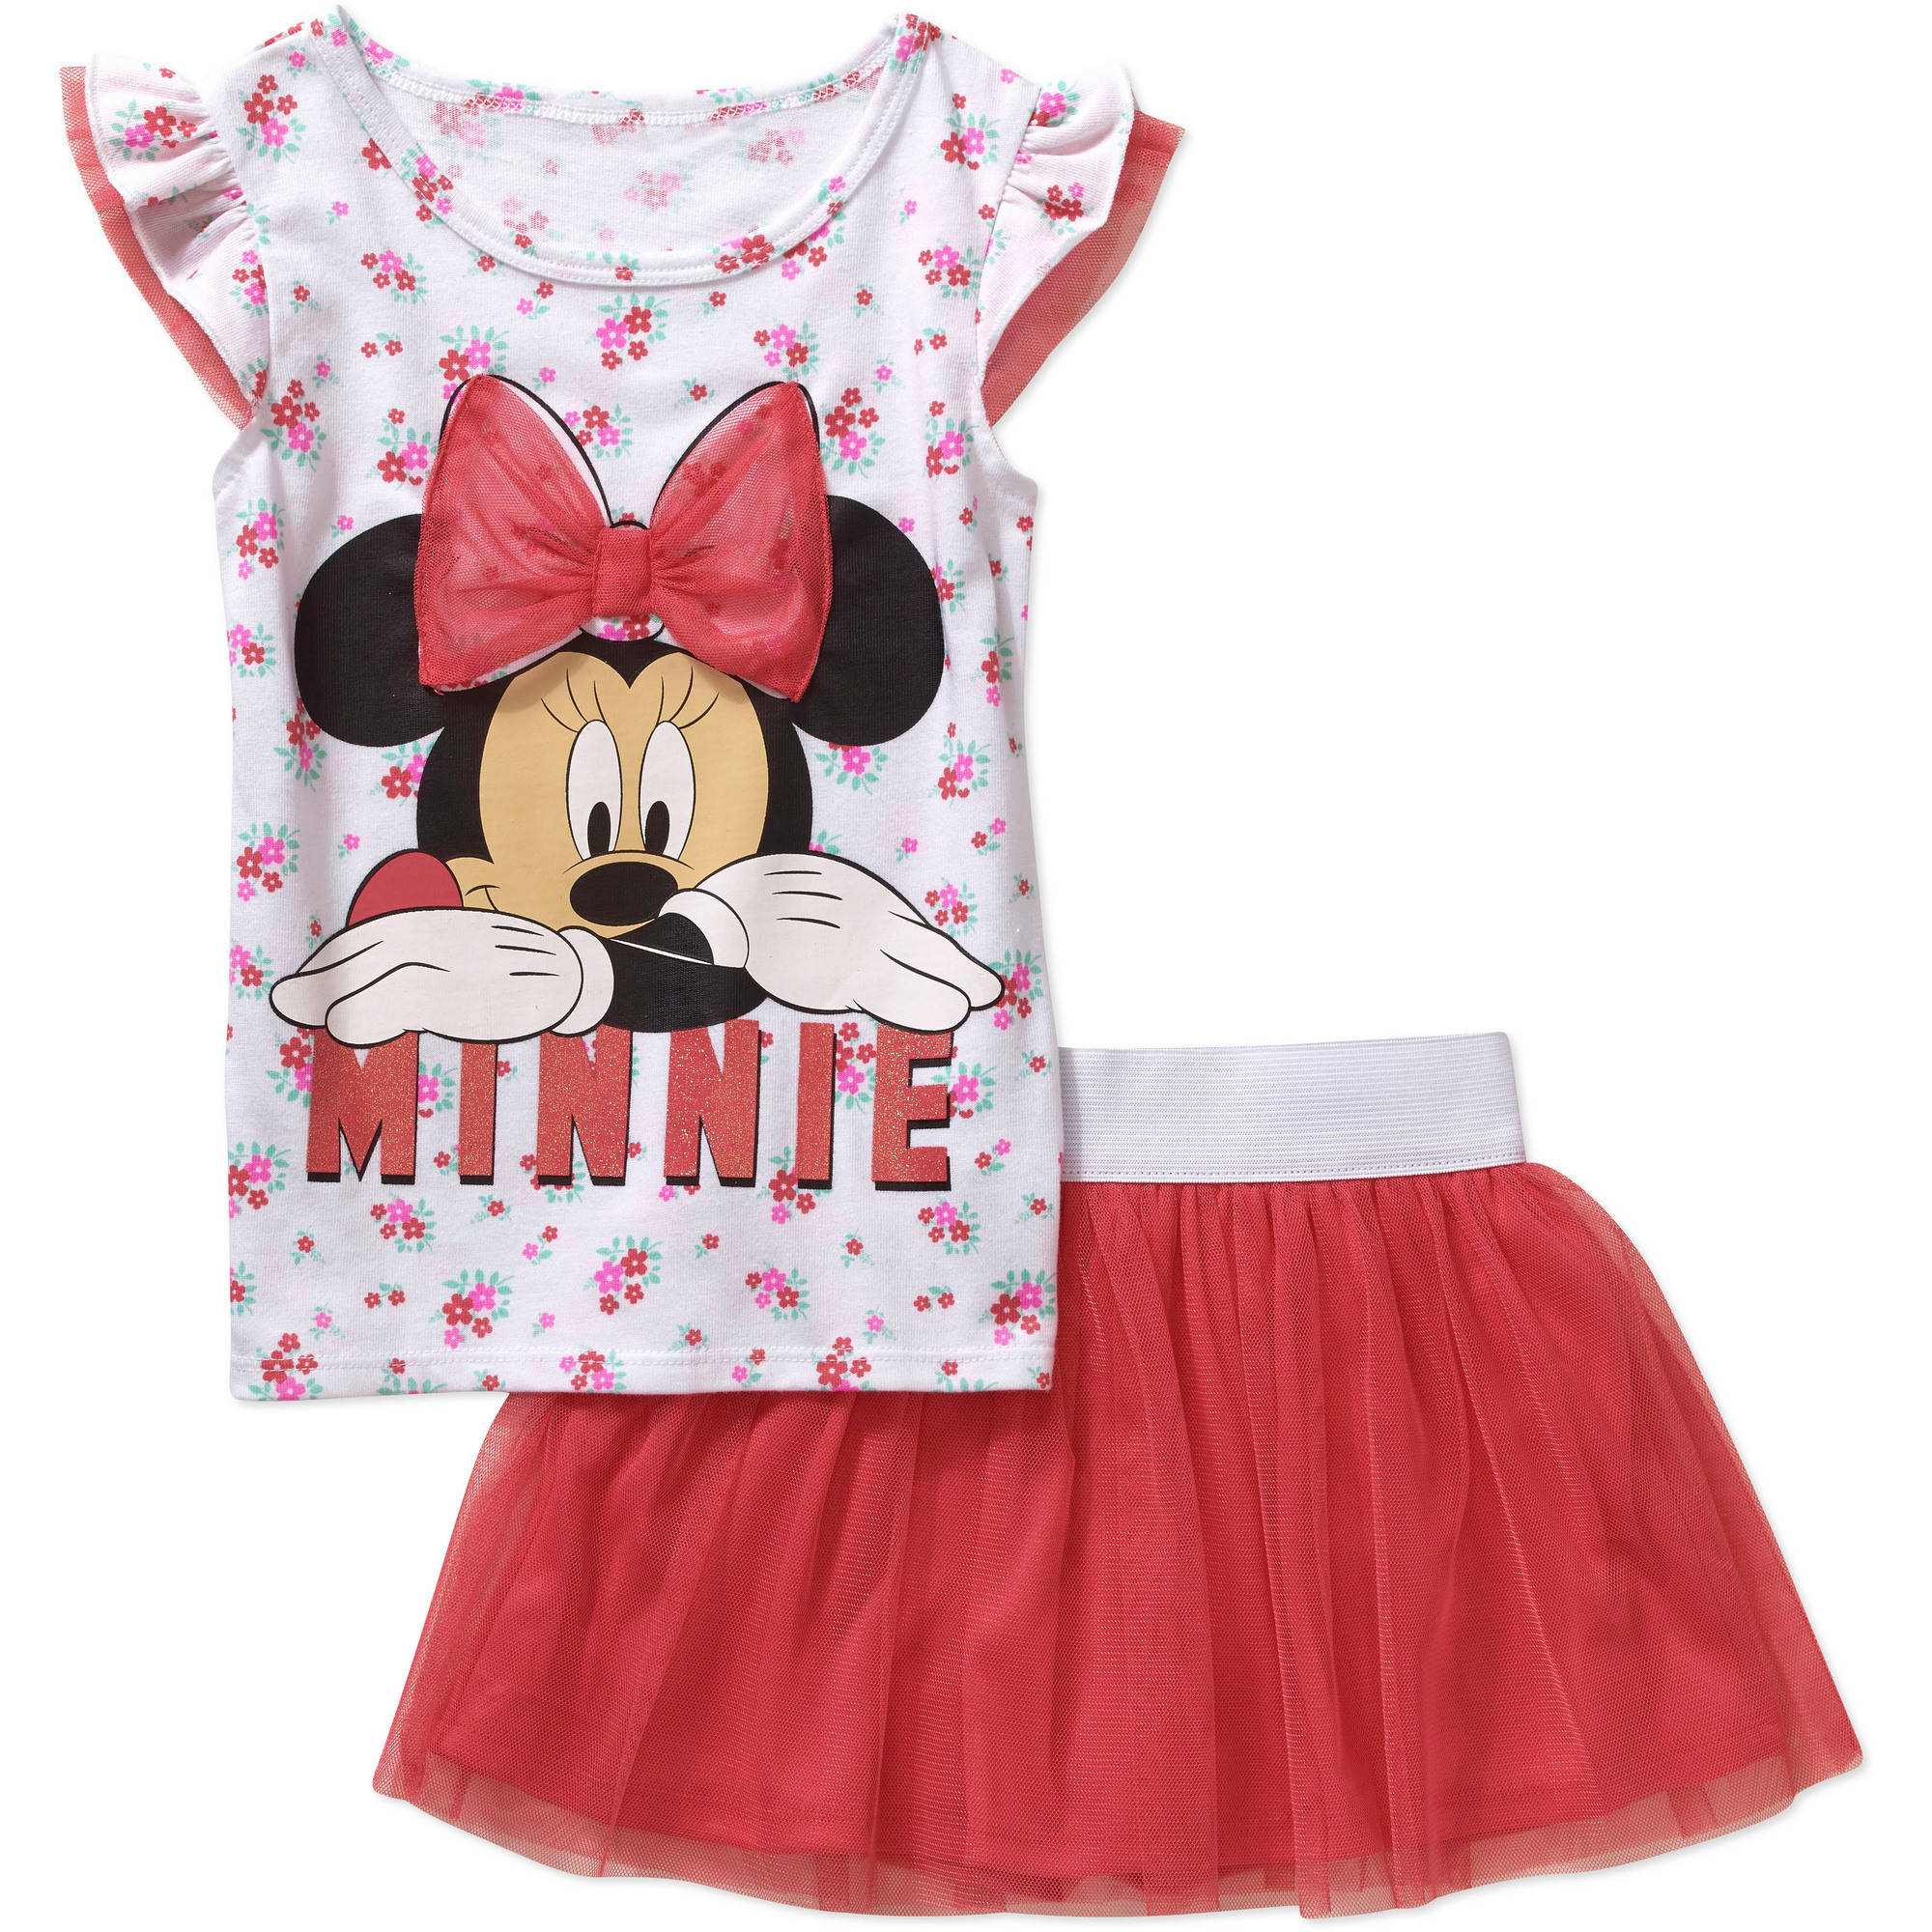 Minnie Mouse Toddler Girl Tee and Skirt Outfit Set